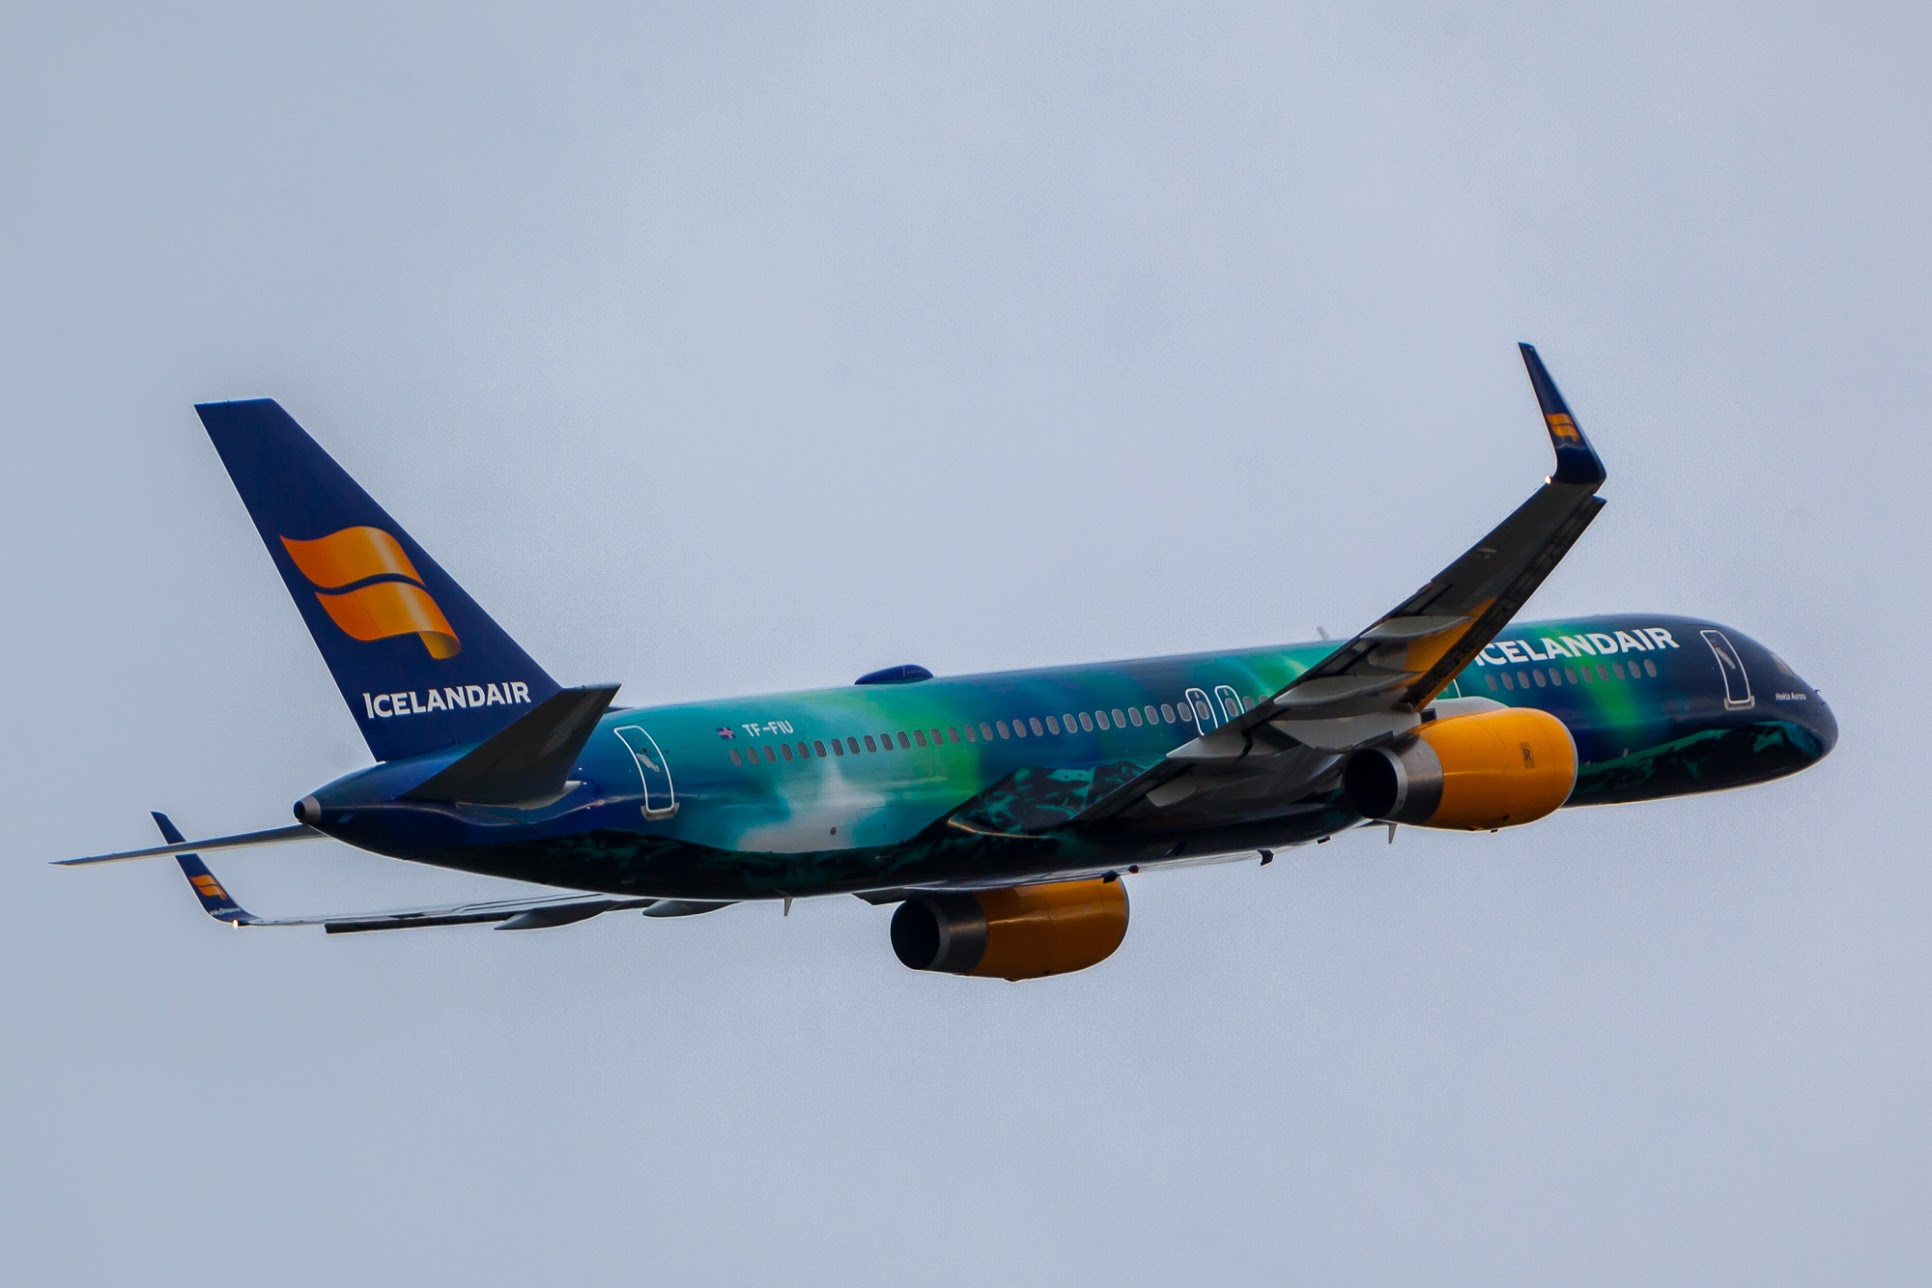 Alaska Airlines adds another Partner to Mileage Plan: Welcome Icelandair